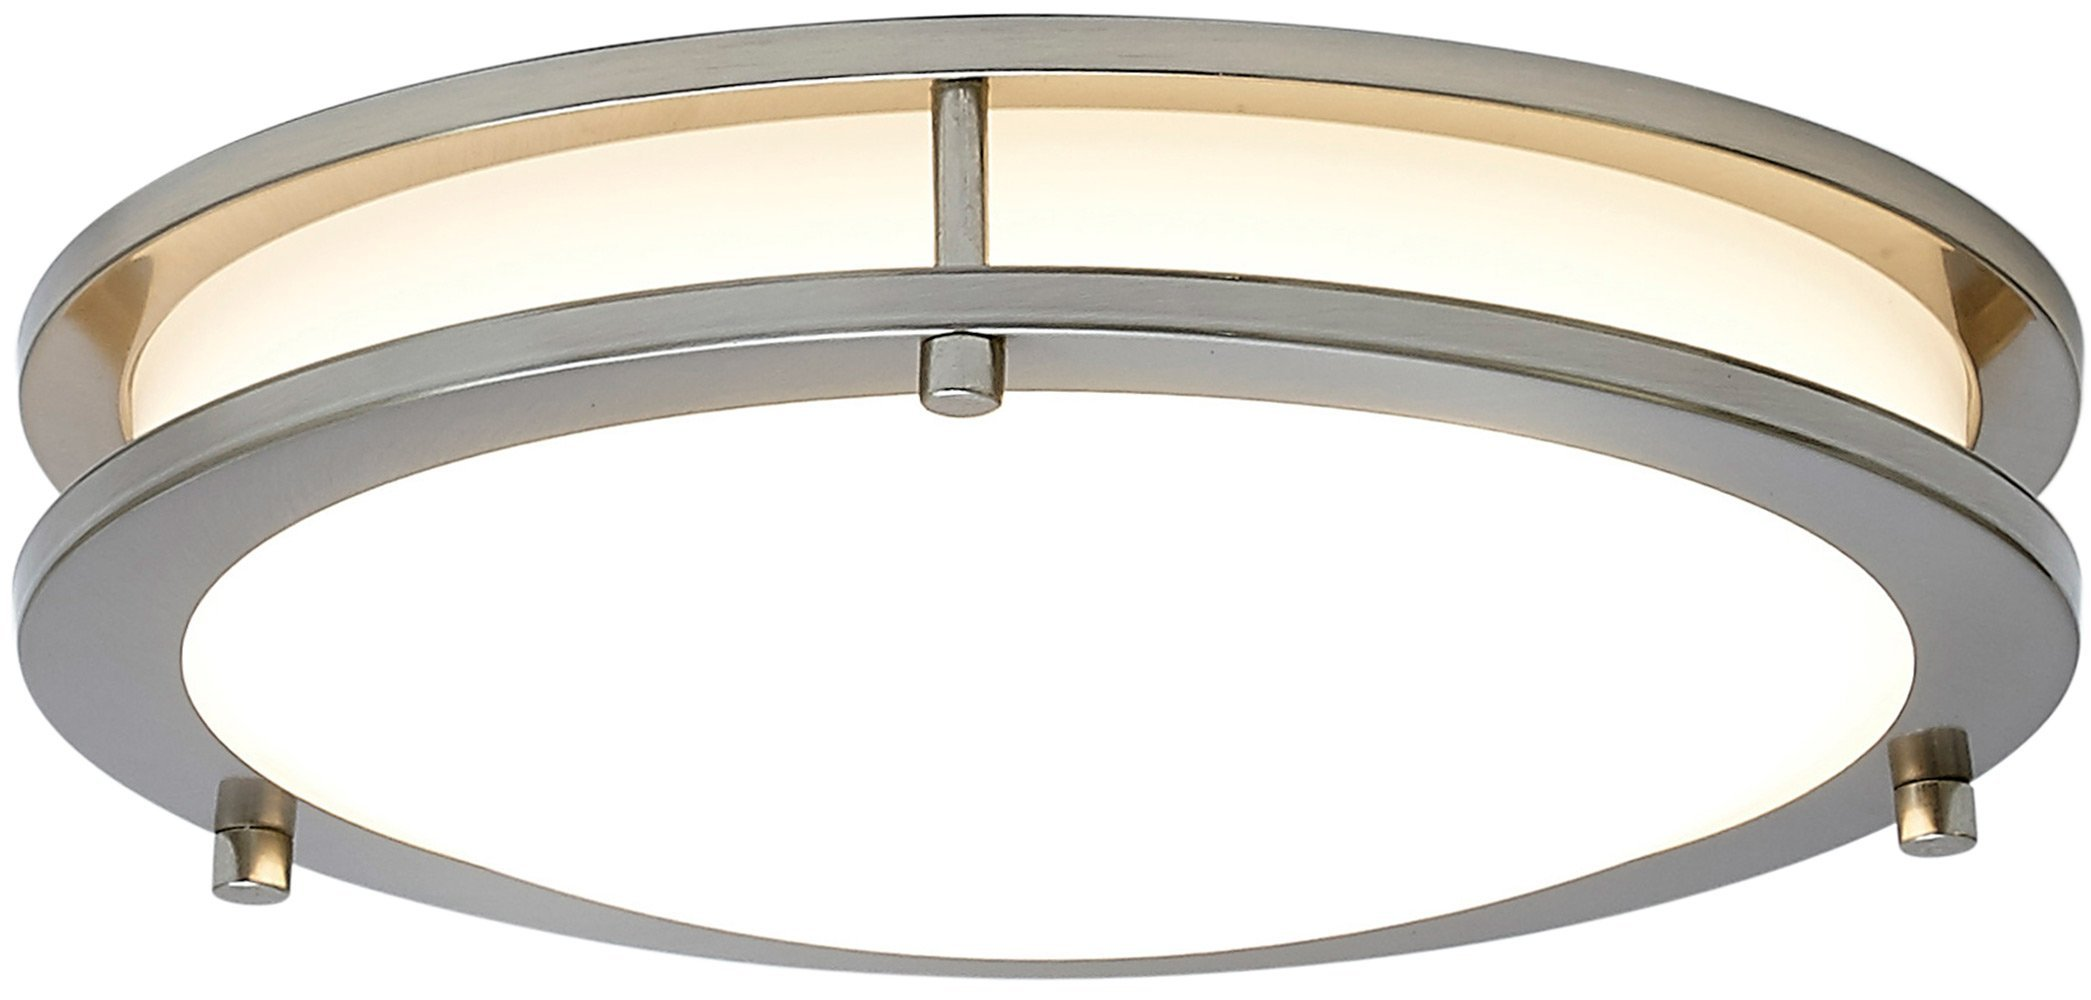 Details about new modern round led ceiling light contemporary sleek circular design